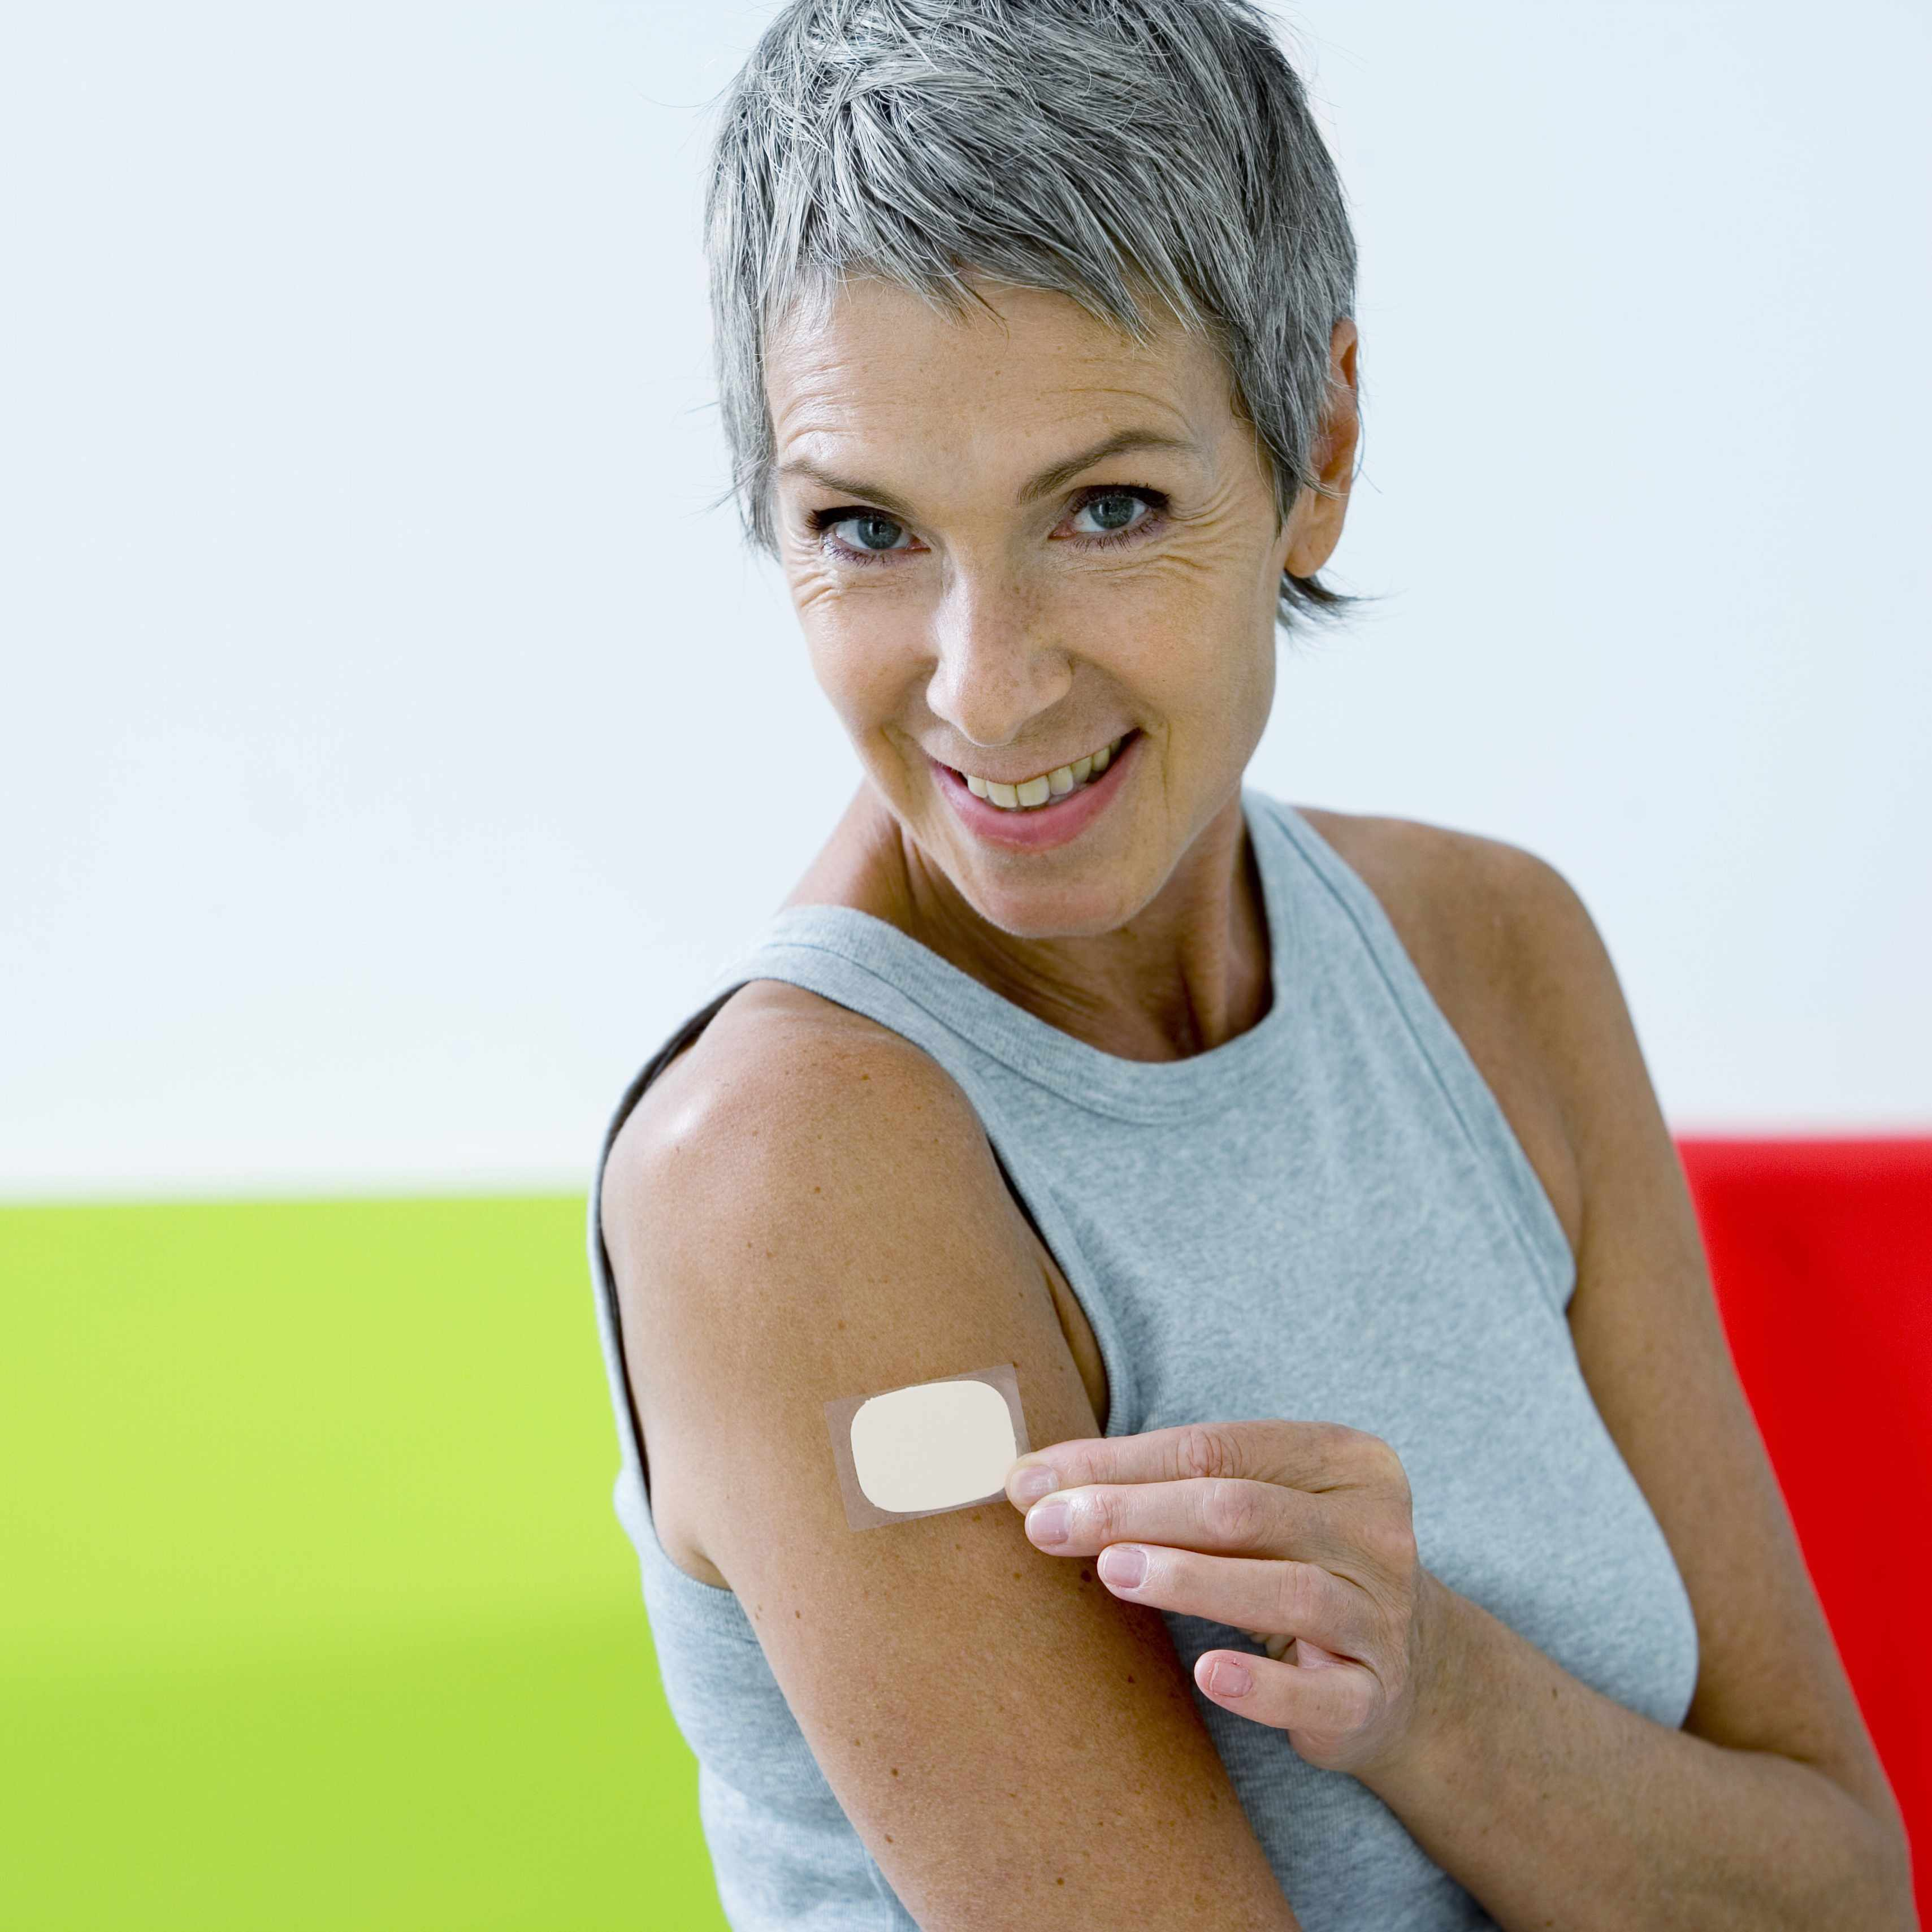 a smiling middle-aged woman with a nicotine patch on her upper arm